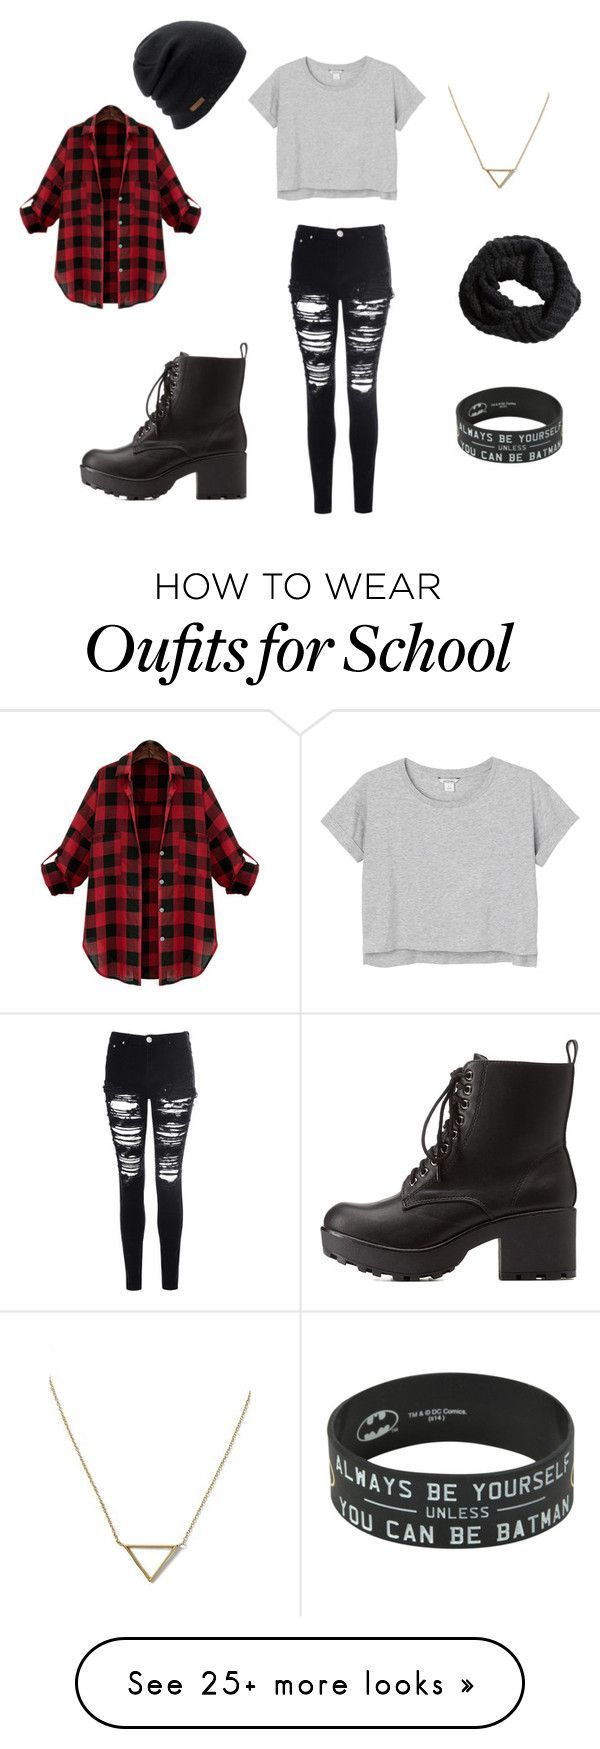 """Fall outfit for school cool shirt"" by agerbaek on Polyvore featuring Monki, Glamorous, H&M, Coal, Banana Republic and Charlotte Russe"